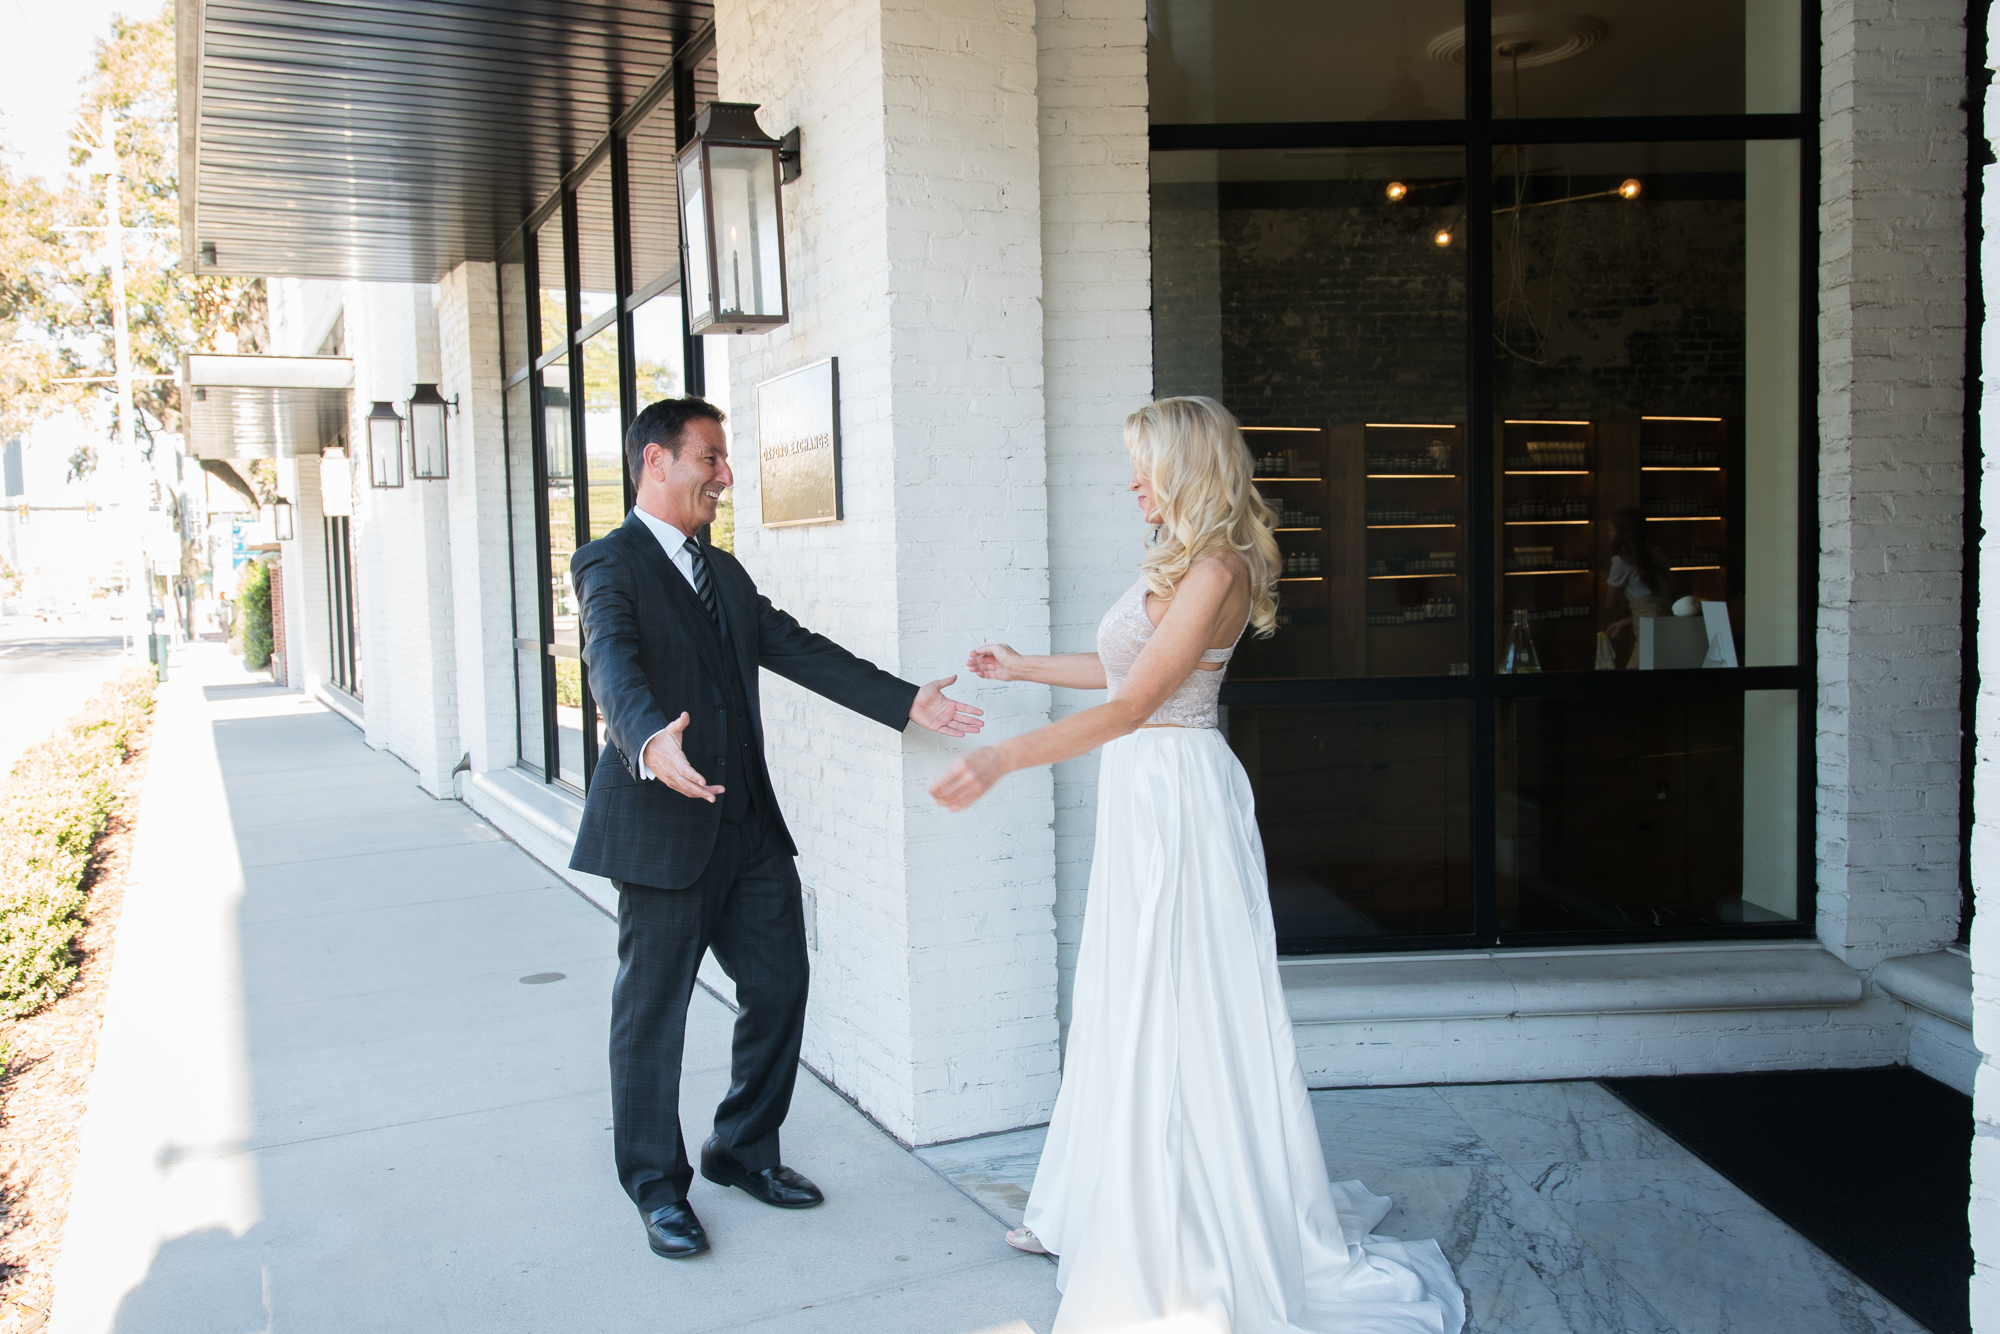 Oxford-Exchange-wedding-photography, first-look